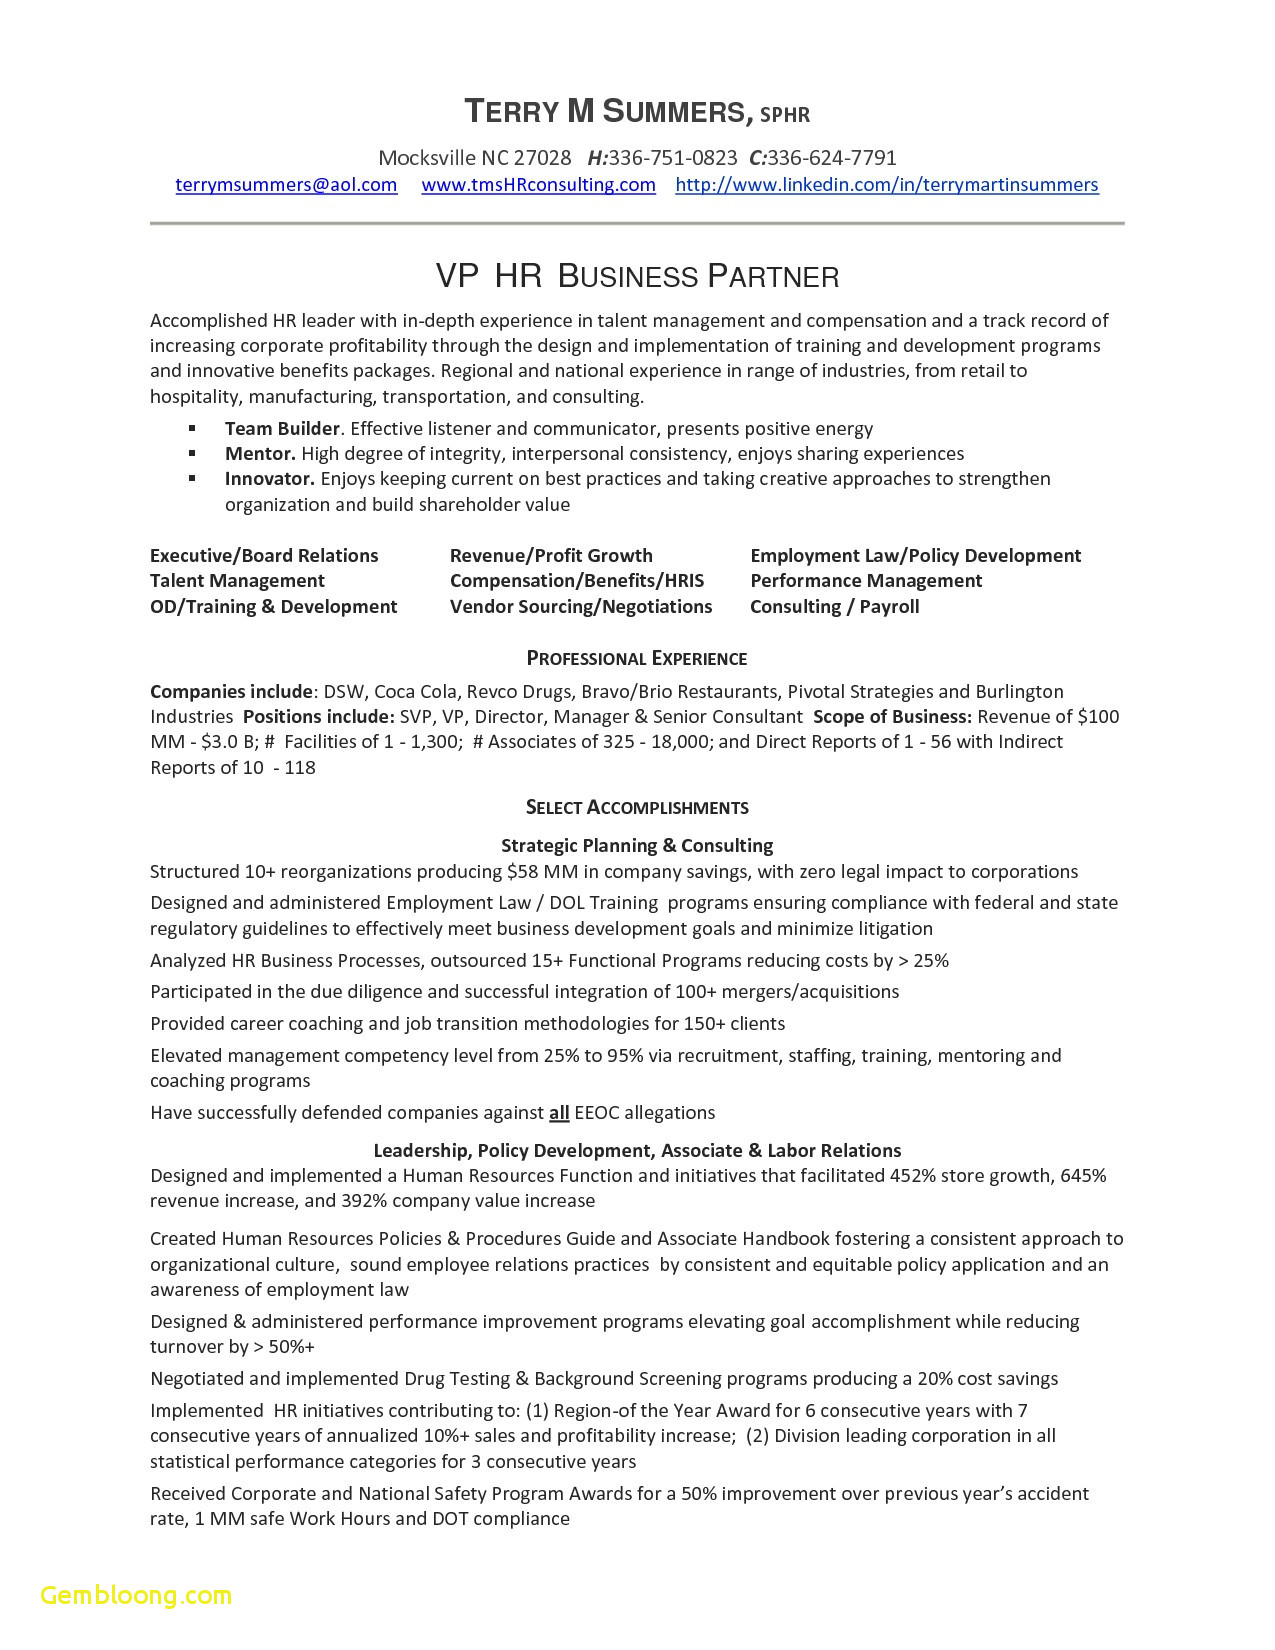 Insurance Marketing Letter Template - Resume Samples for Retail Free Download Cover Letter Template Hr